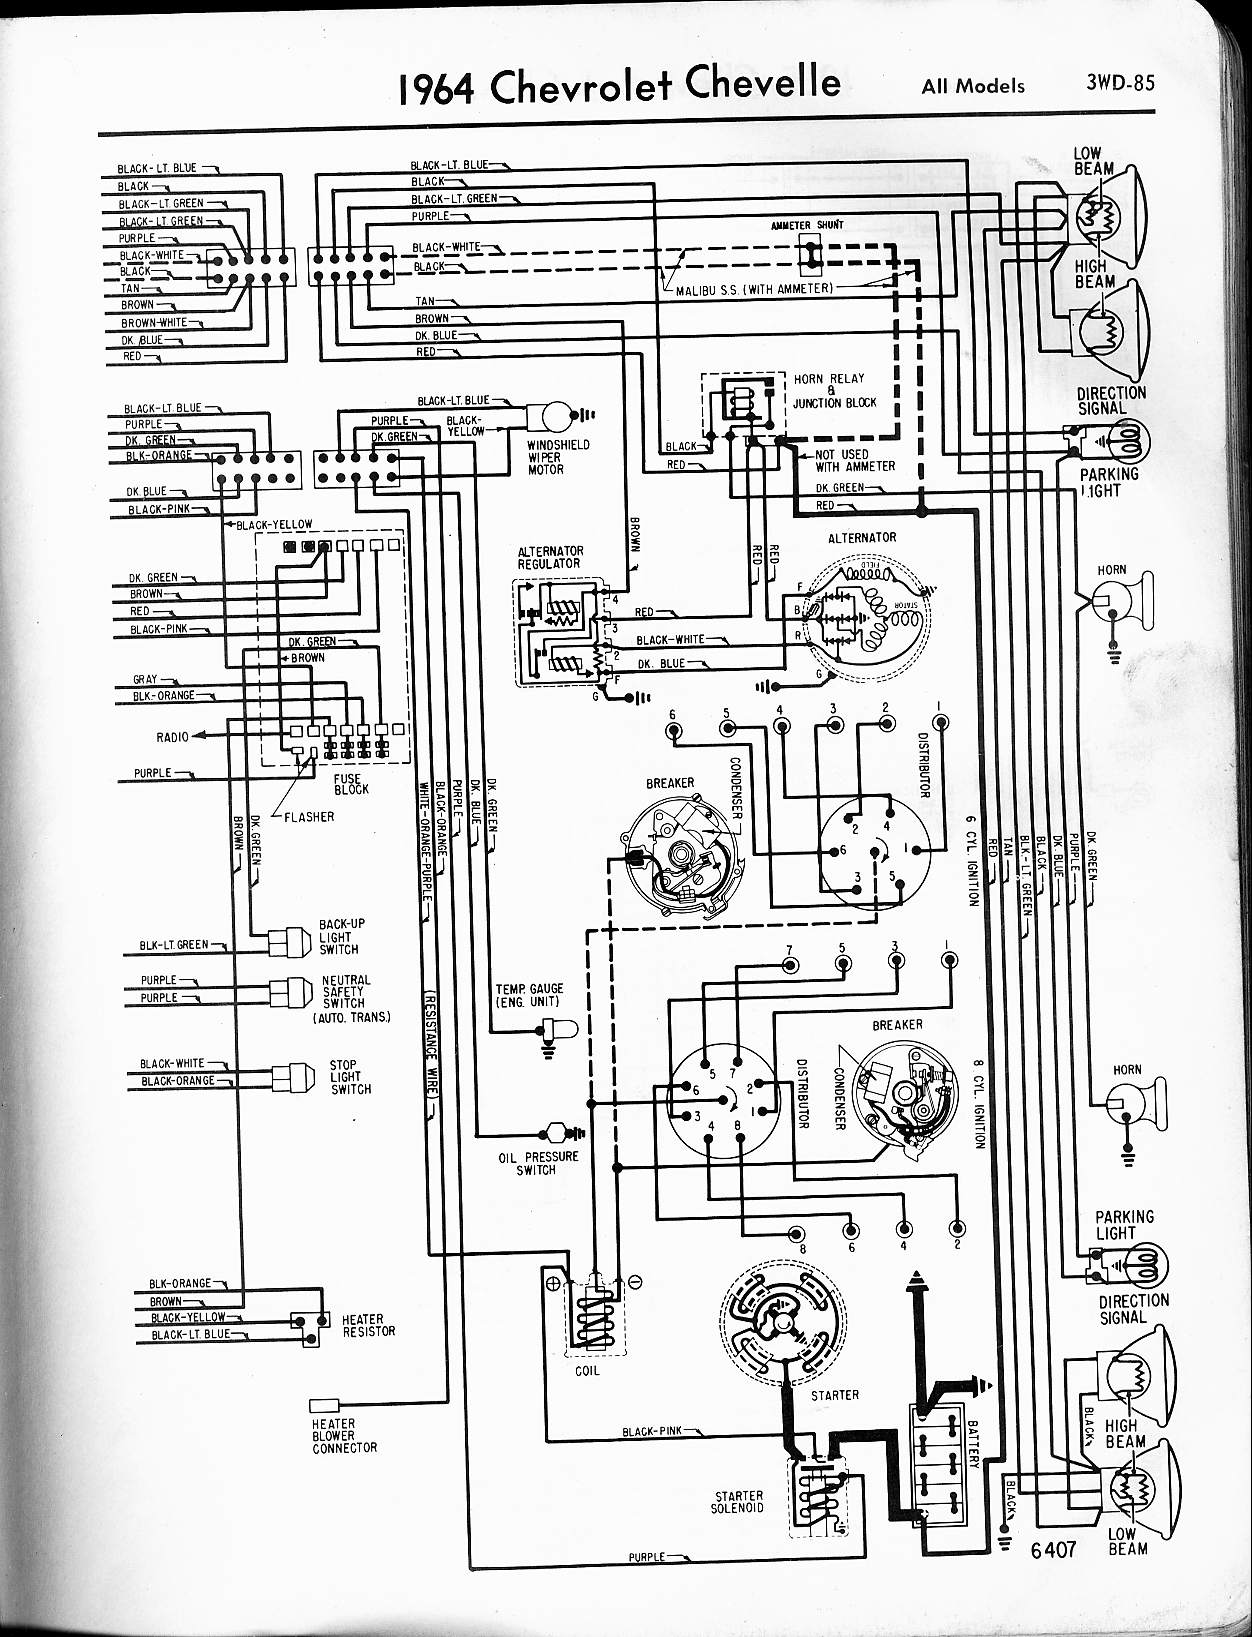 hight resolution of 1964 chevelle fuse box diagram simple wiring diagram 1964 chevy hood hinge 1964 chevy fuse box